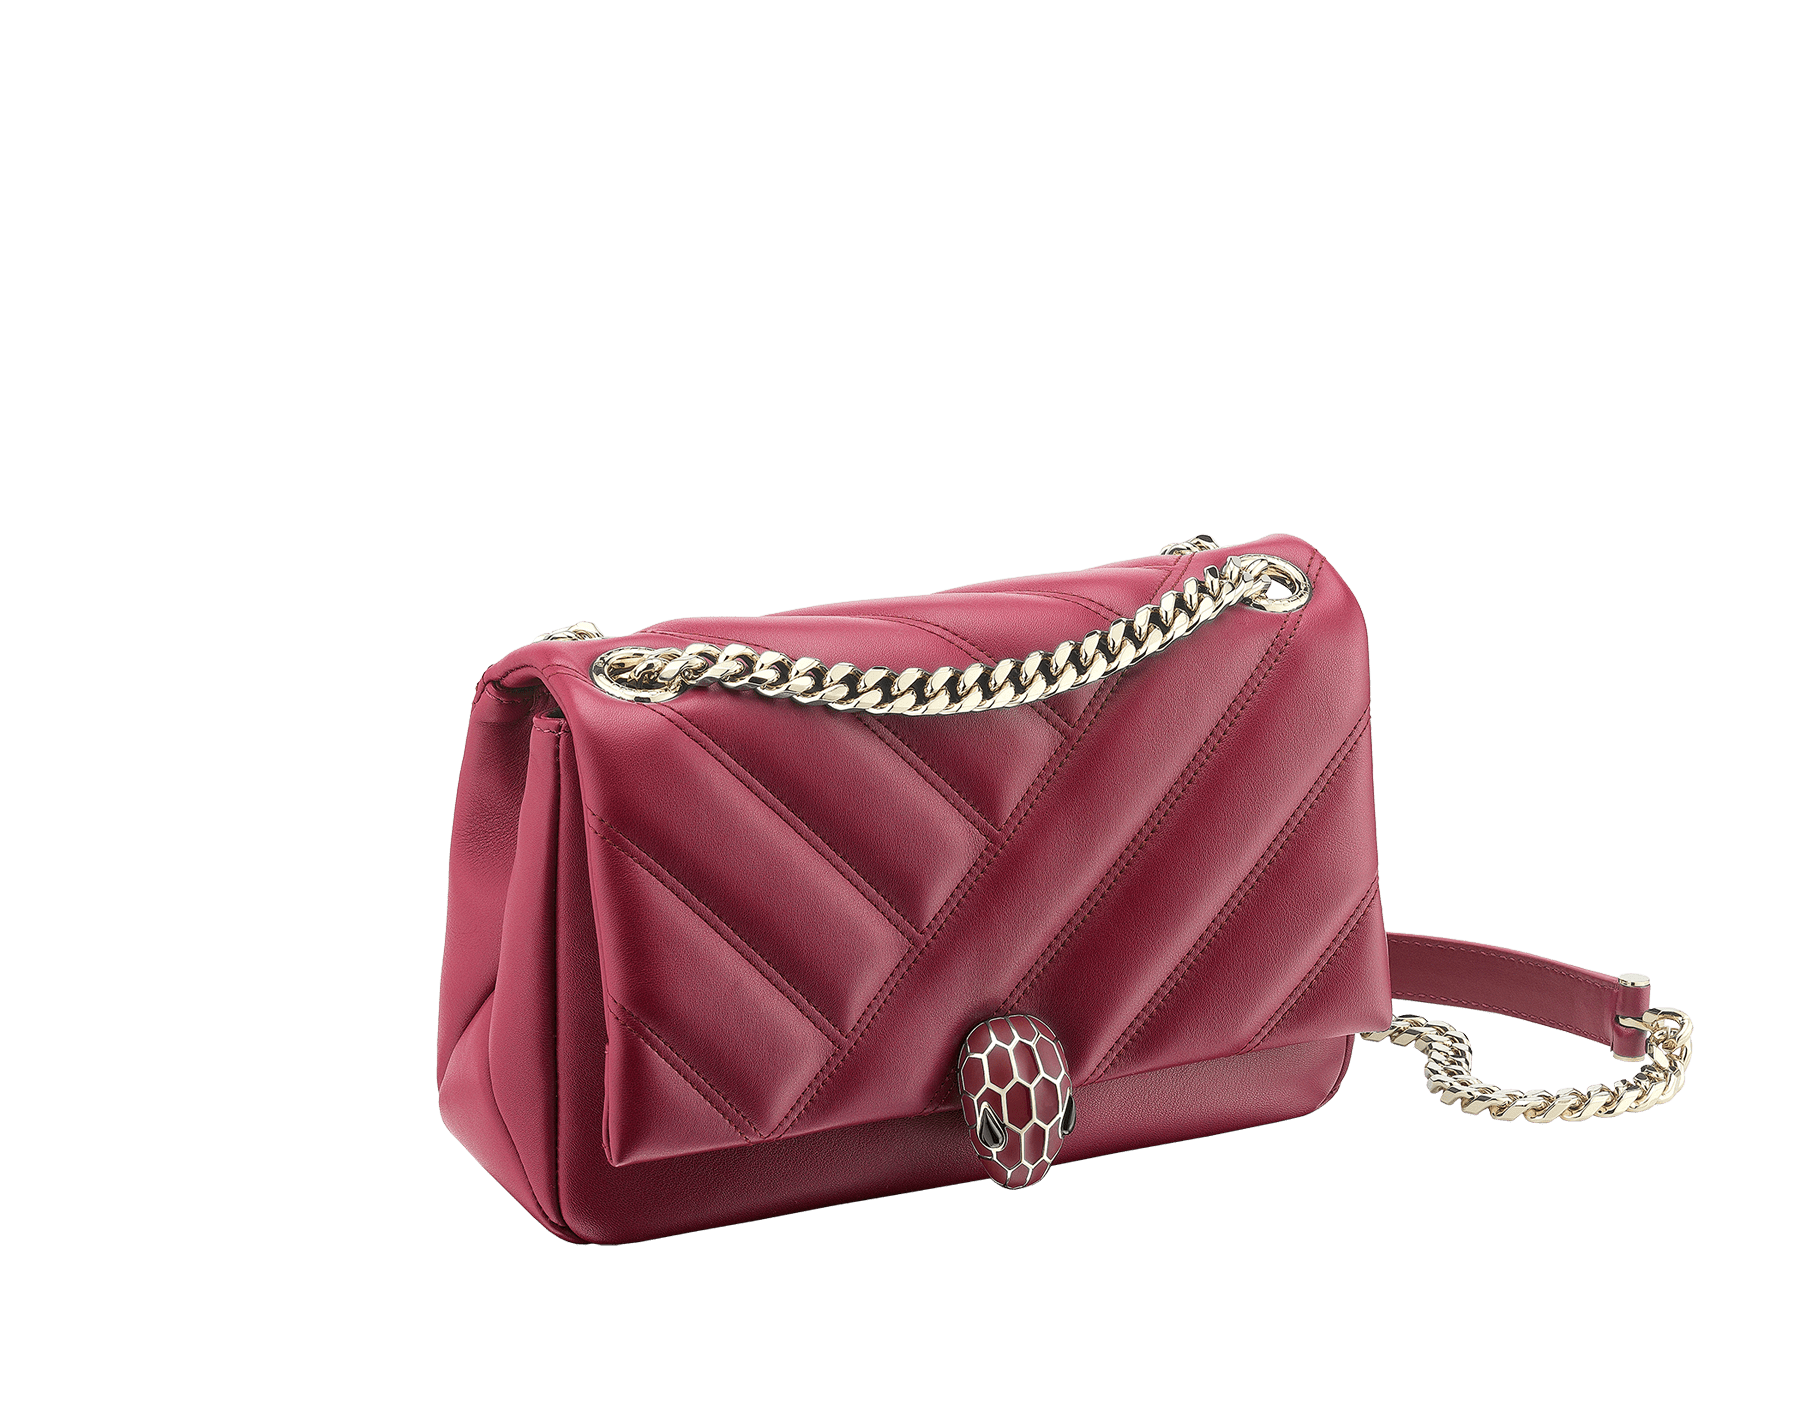 Serpenti Cabochon shoulder bag in soft matelassé Roman garnet nappa leather with a graphic motif, and Roman garnet calf leather. Light gold-plated brass tempting snakehead closure in matte Roman garnet and shiny Roman garnet enamel and black onyx eyes. 981-NSM image 2